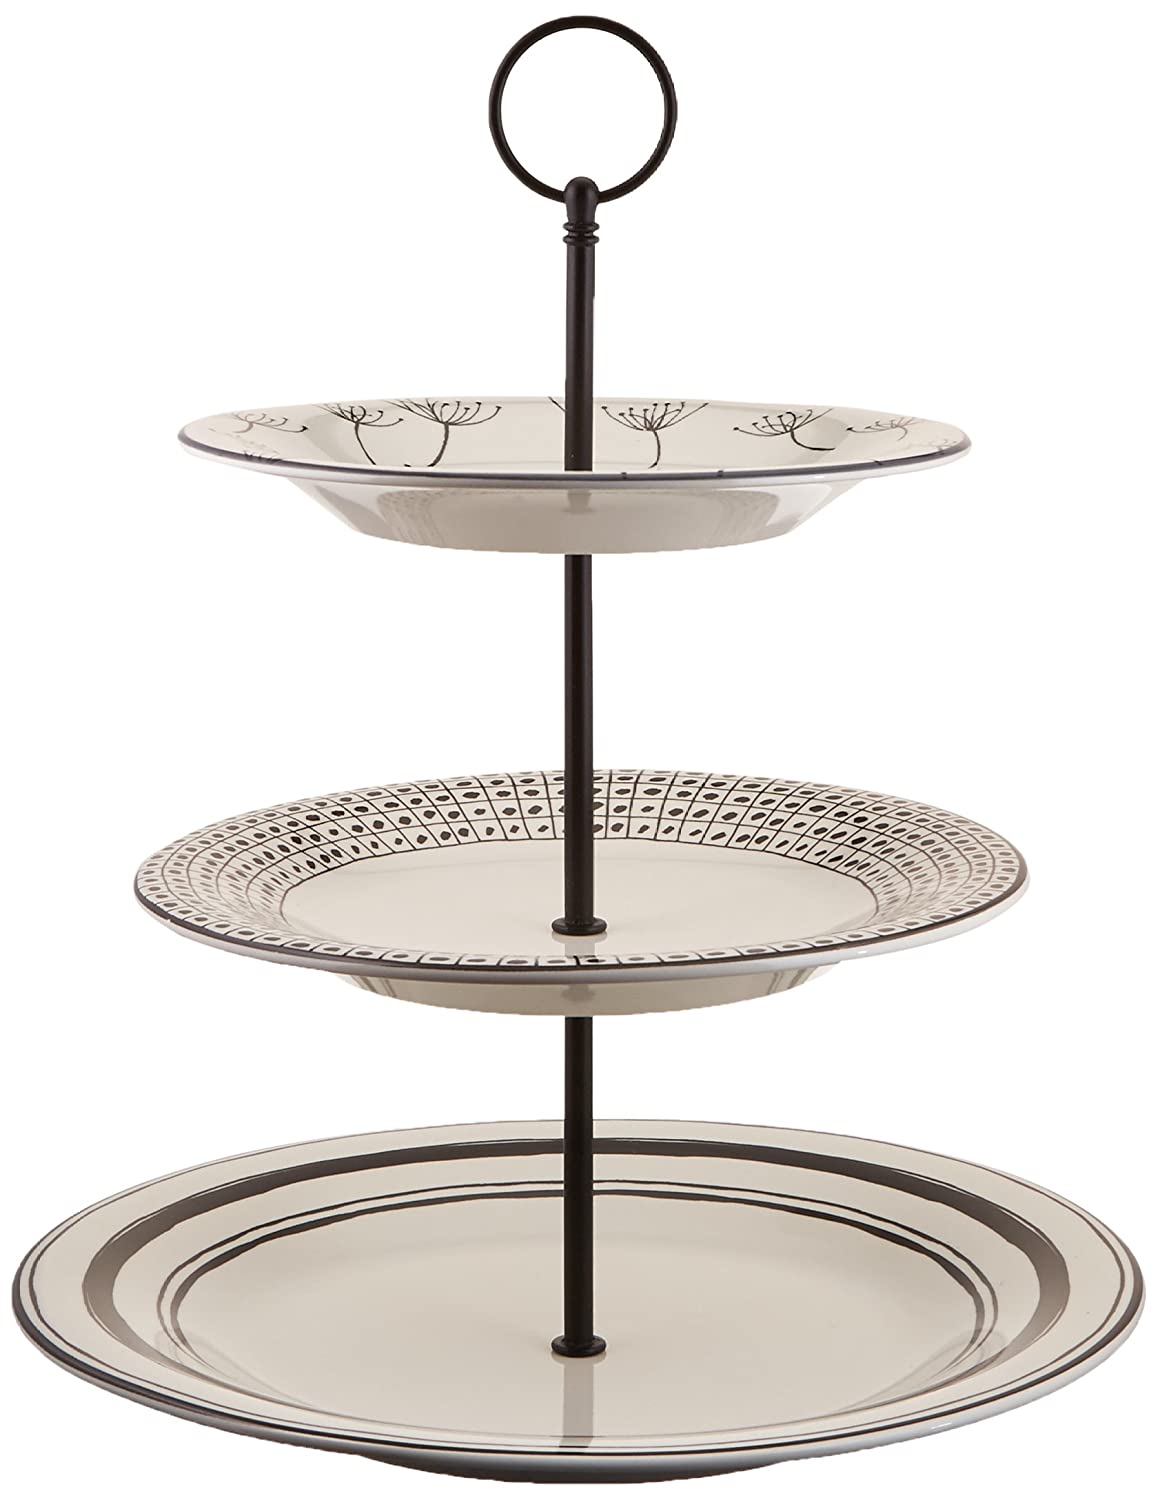 Lenox Around the Table 3 Tiered Server, White 857292